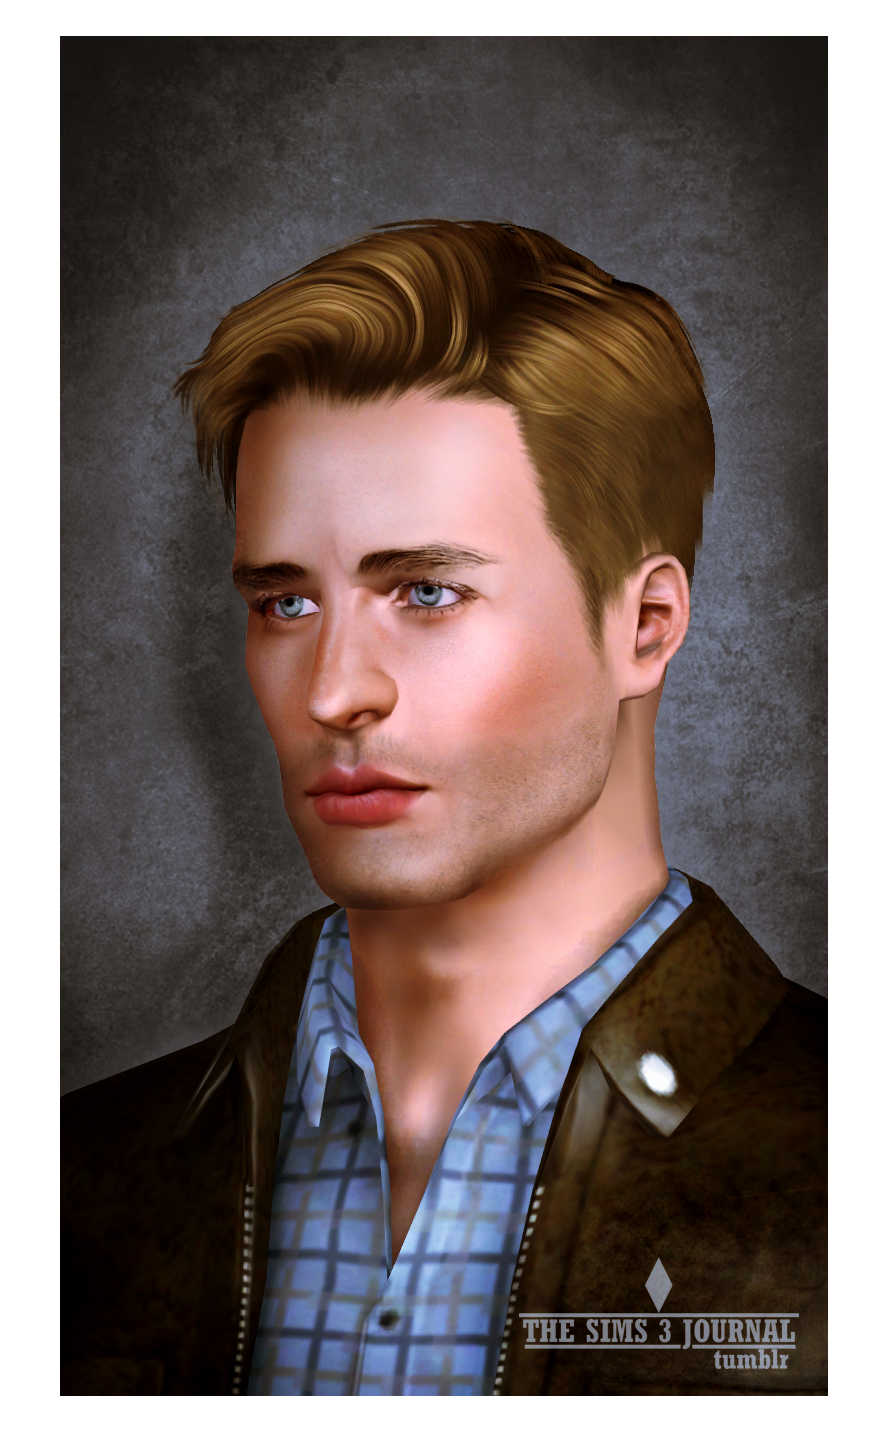 Sims Hairstyle America Photography Hiddleston Tom Portrait PNG Image